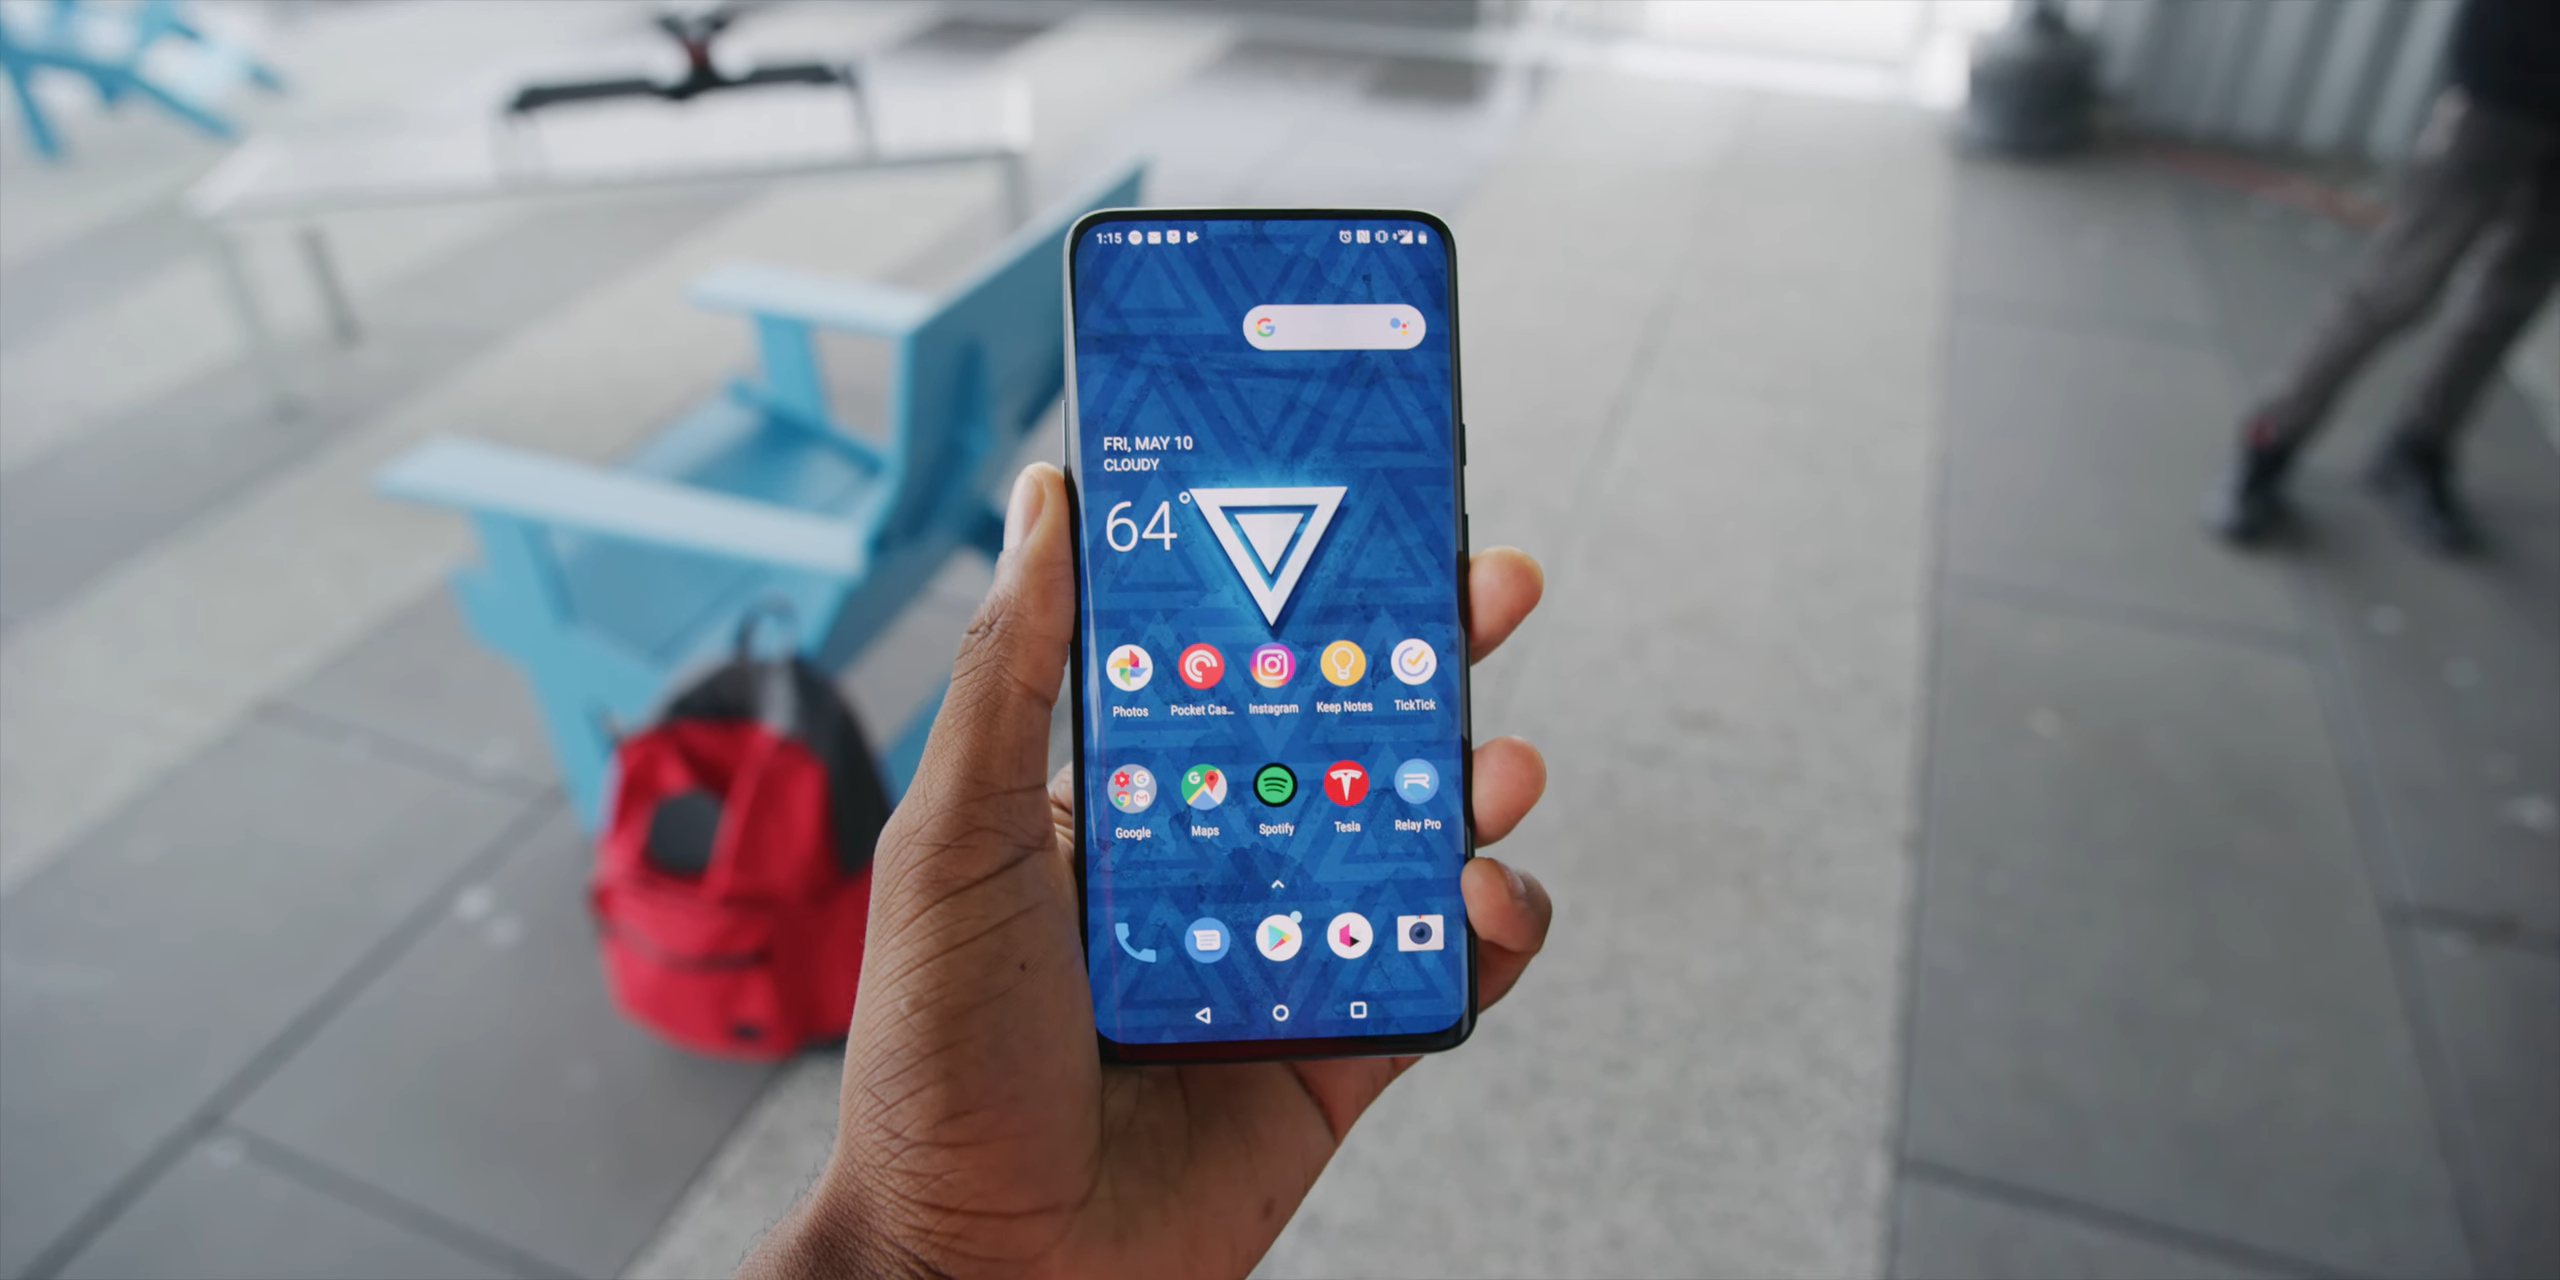 OnePlus 7 Pro Display in use